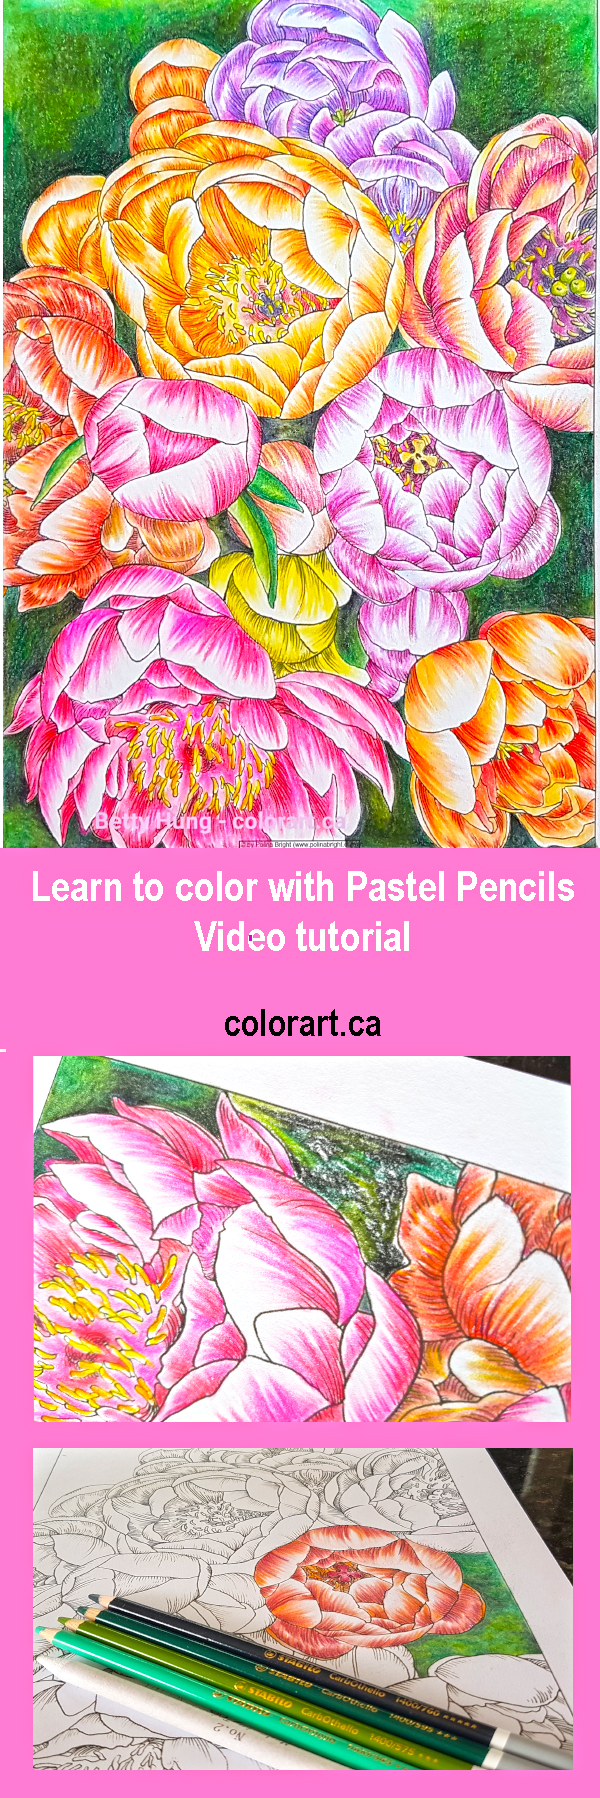 Learn how to color with Pastel Pencils